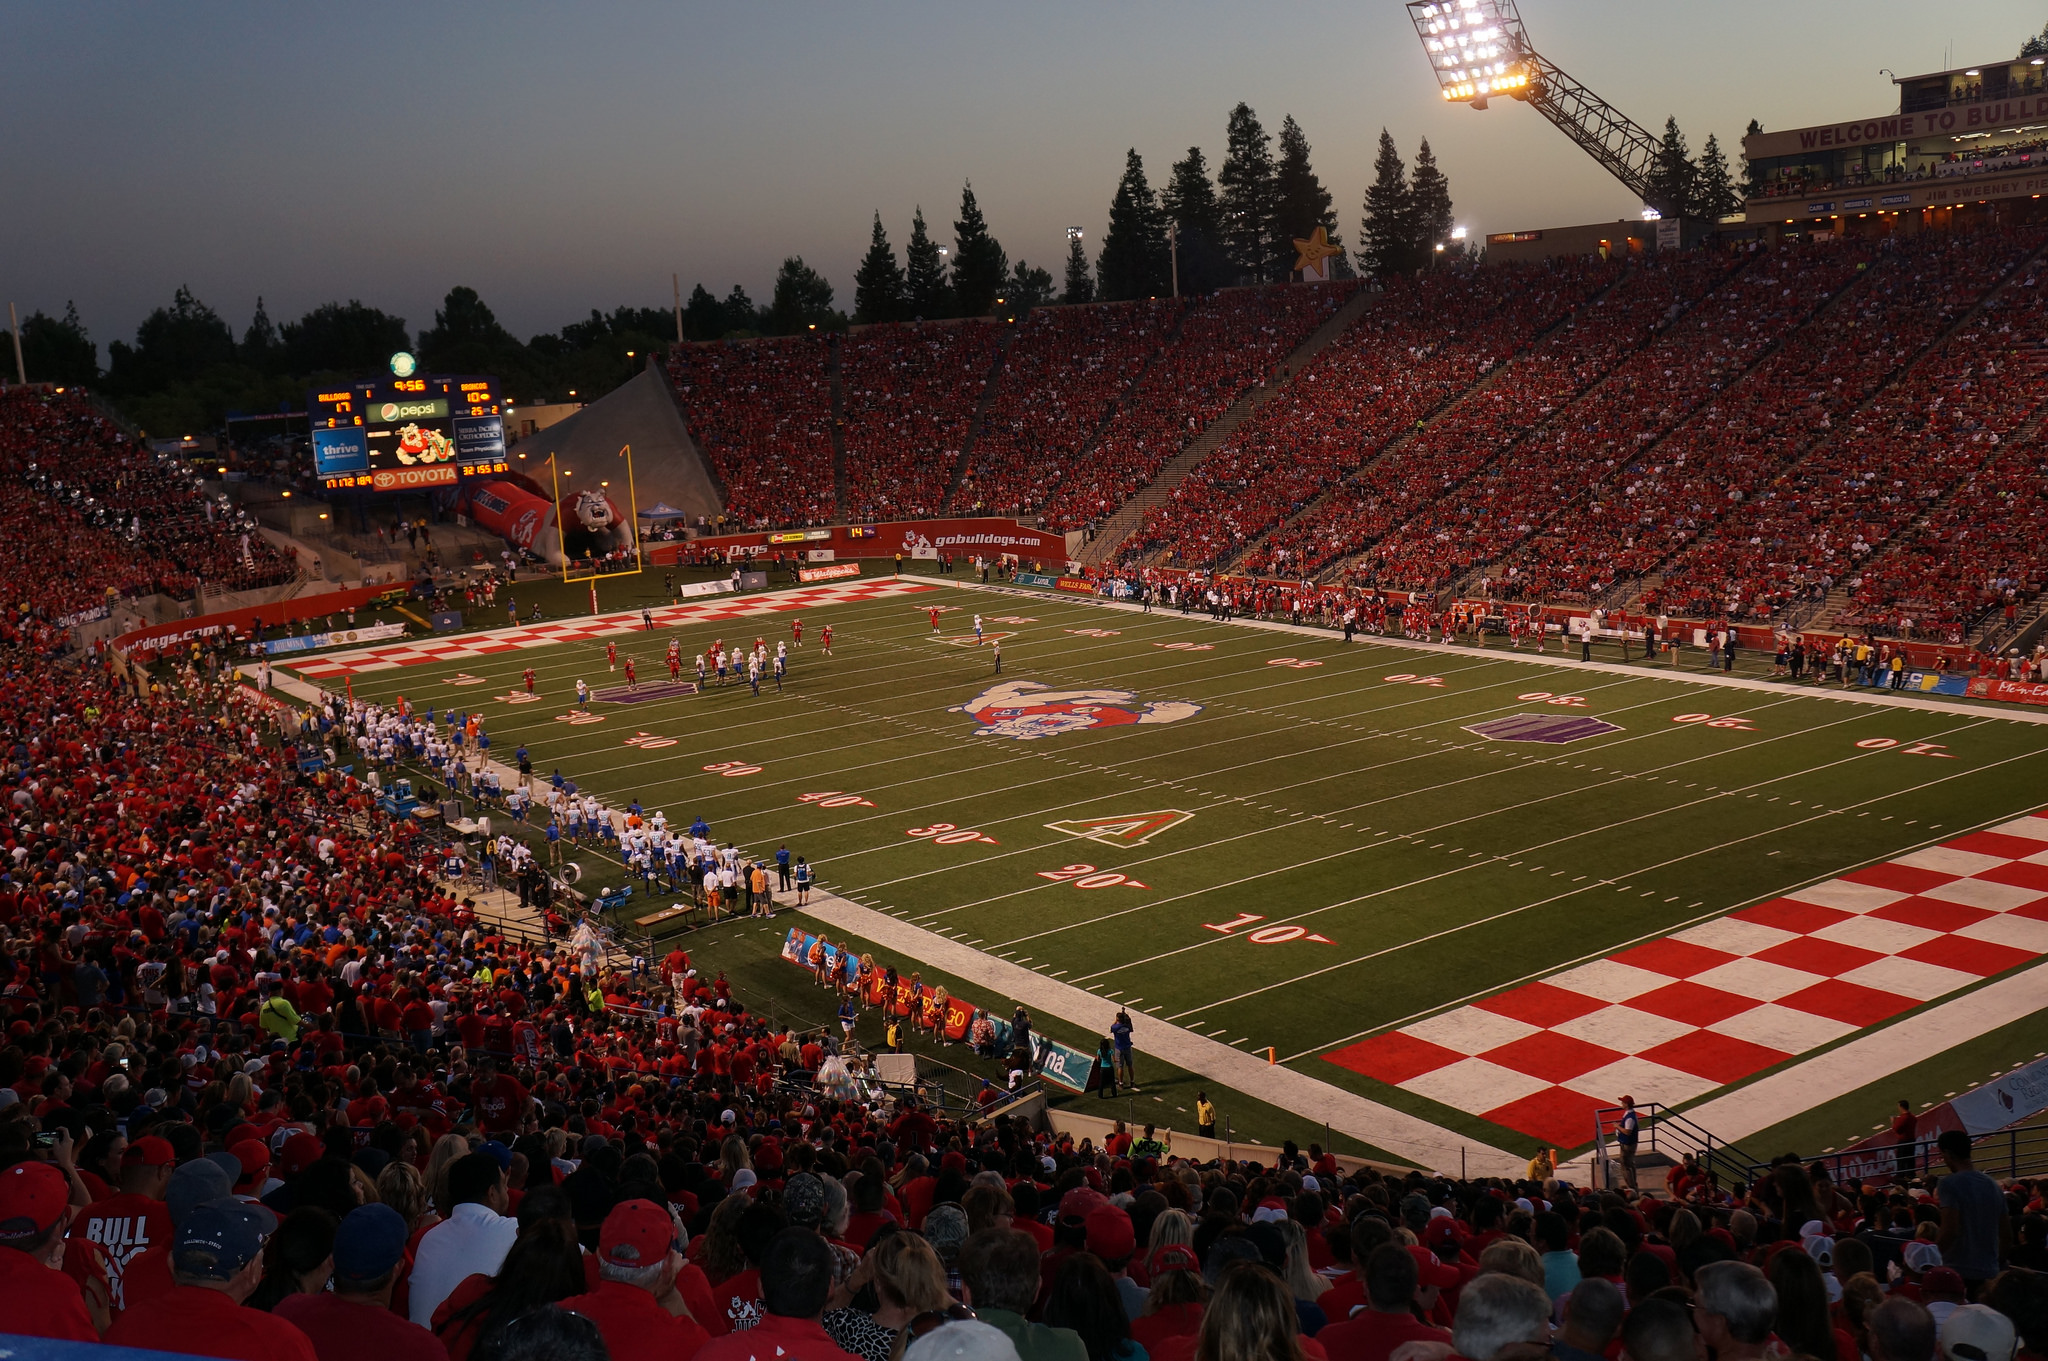 Bulldog Stadium, home of the Fresno State Bulldogs